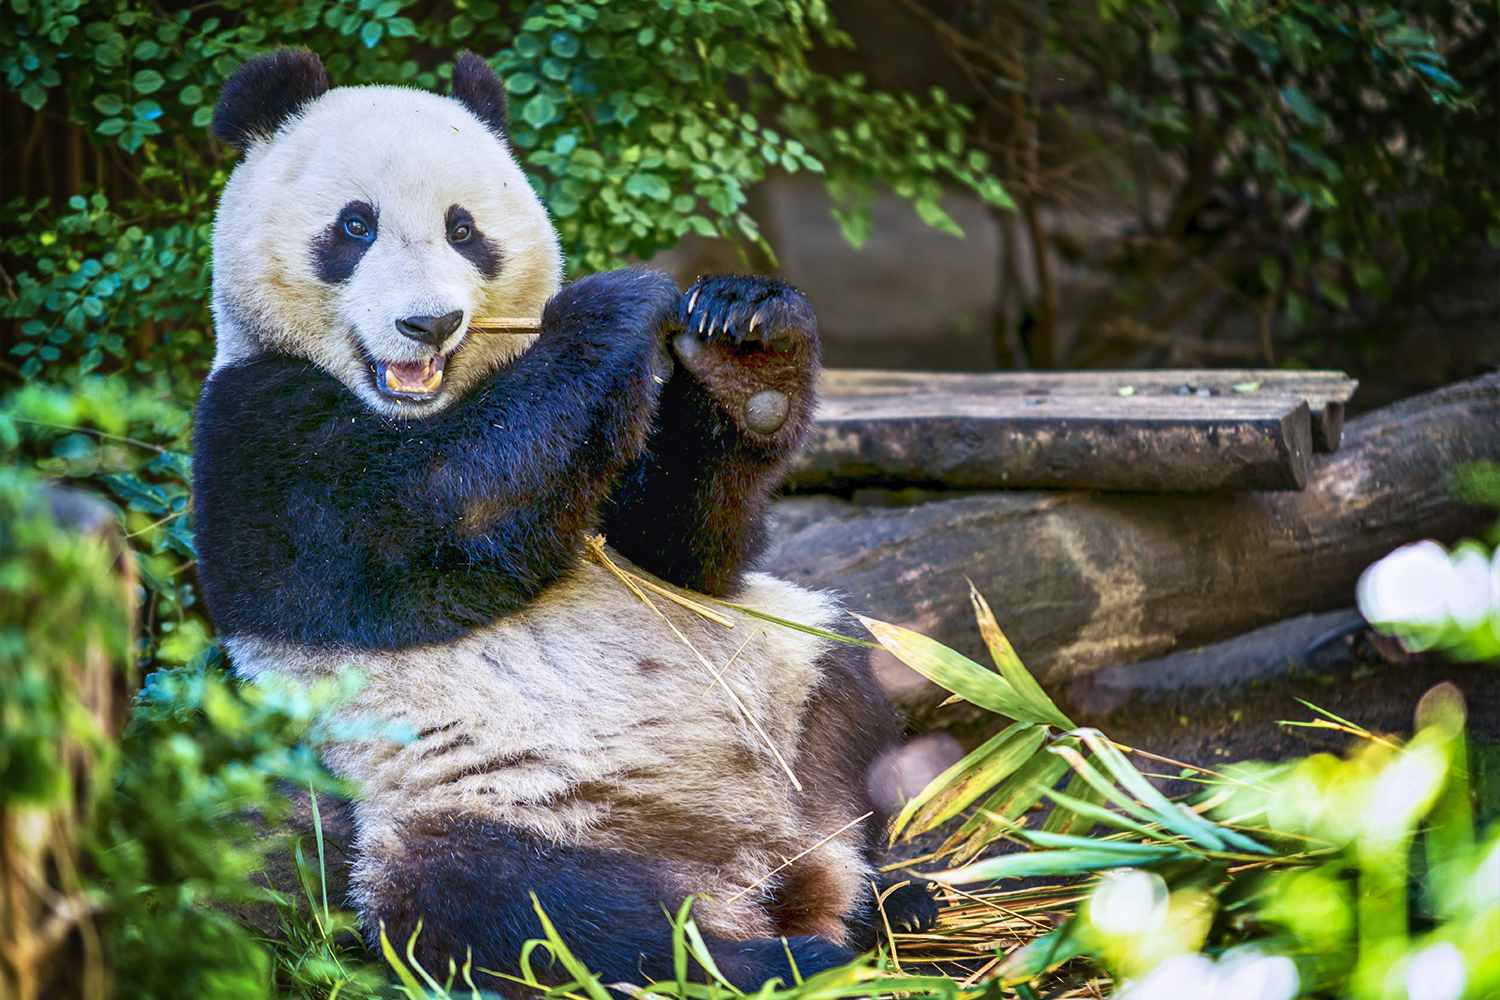 Young Panda at the San Diego Zoo